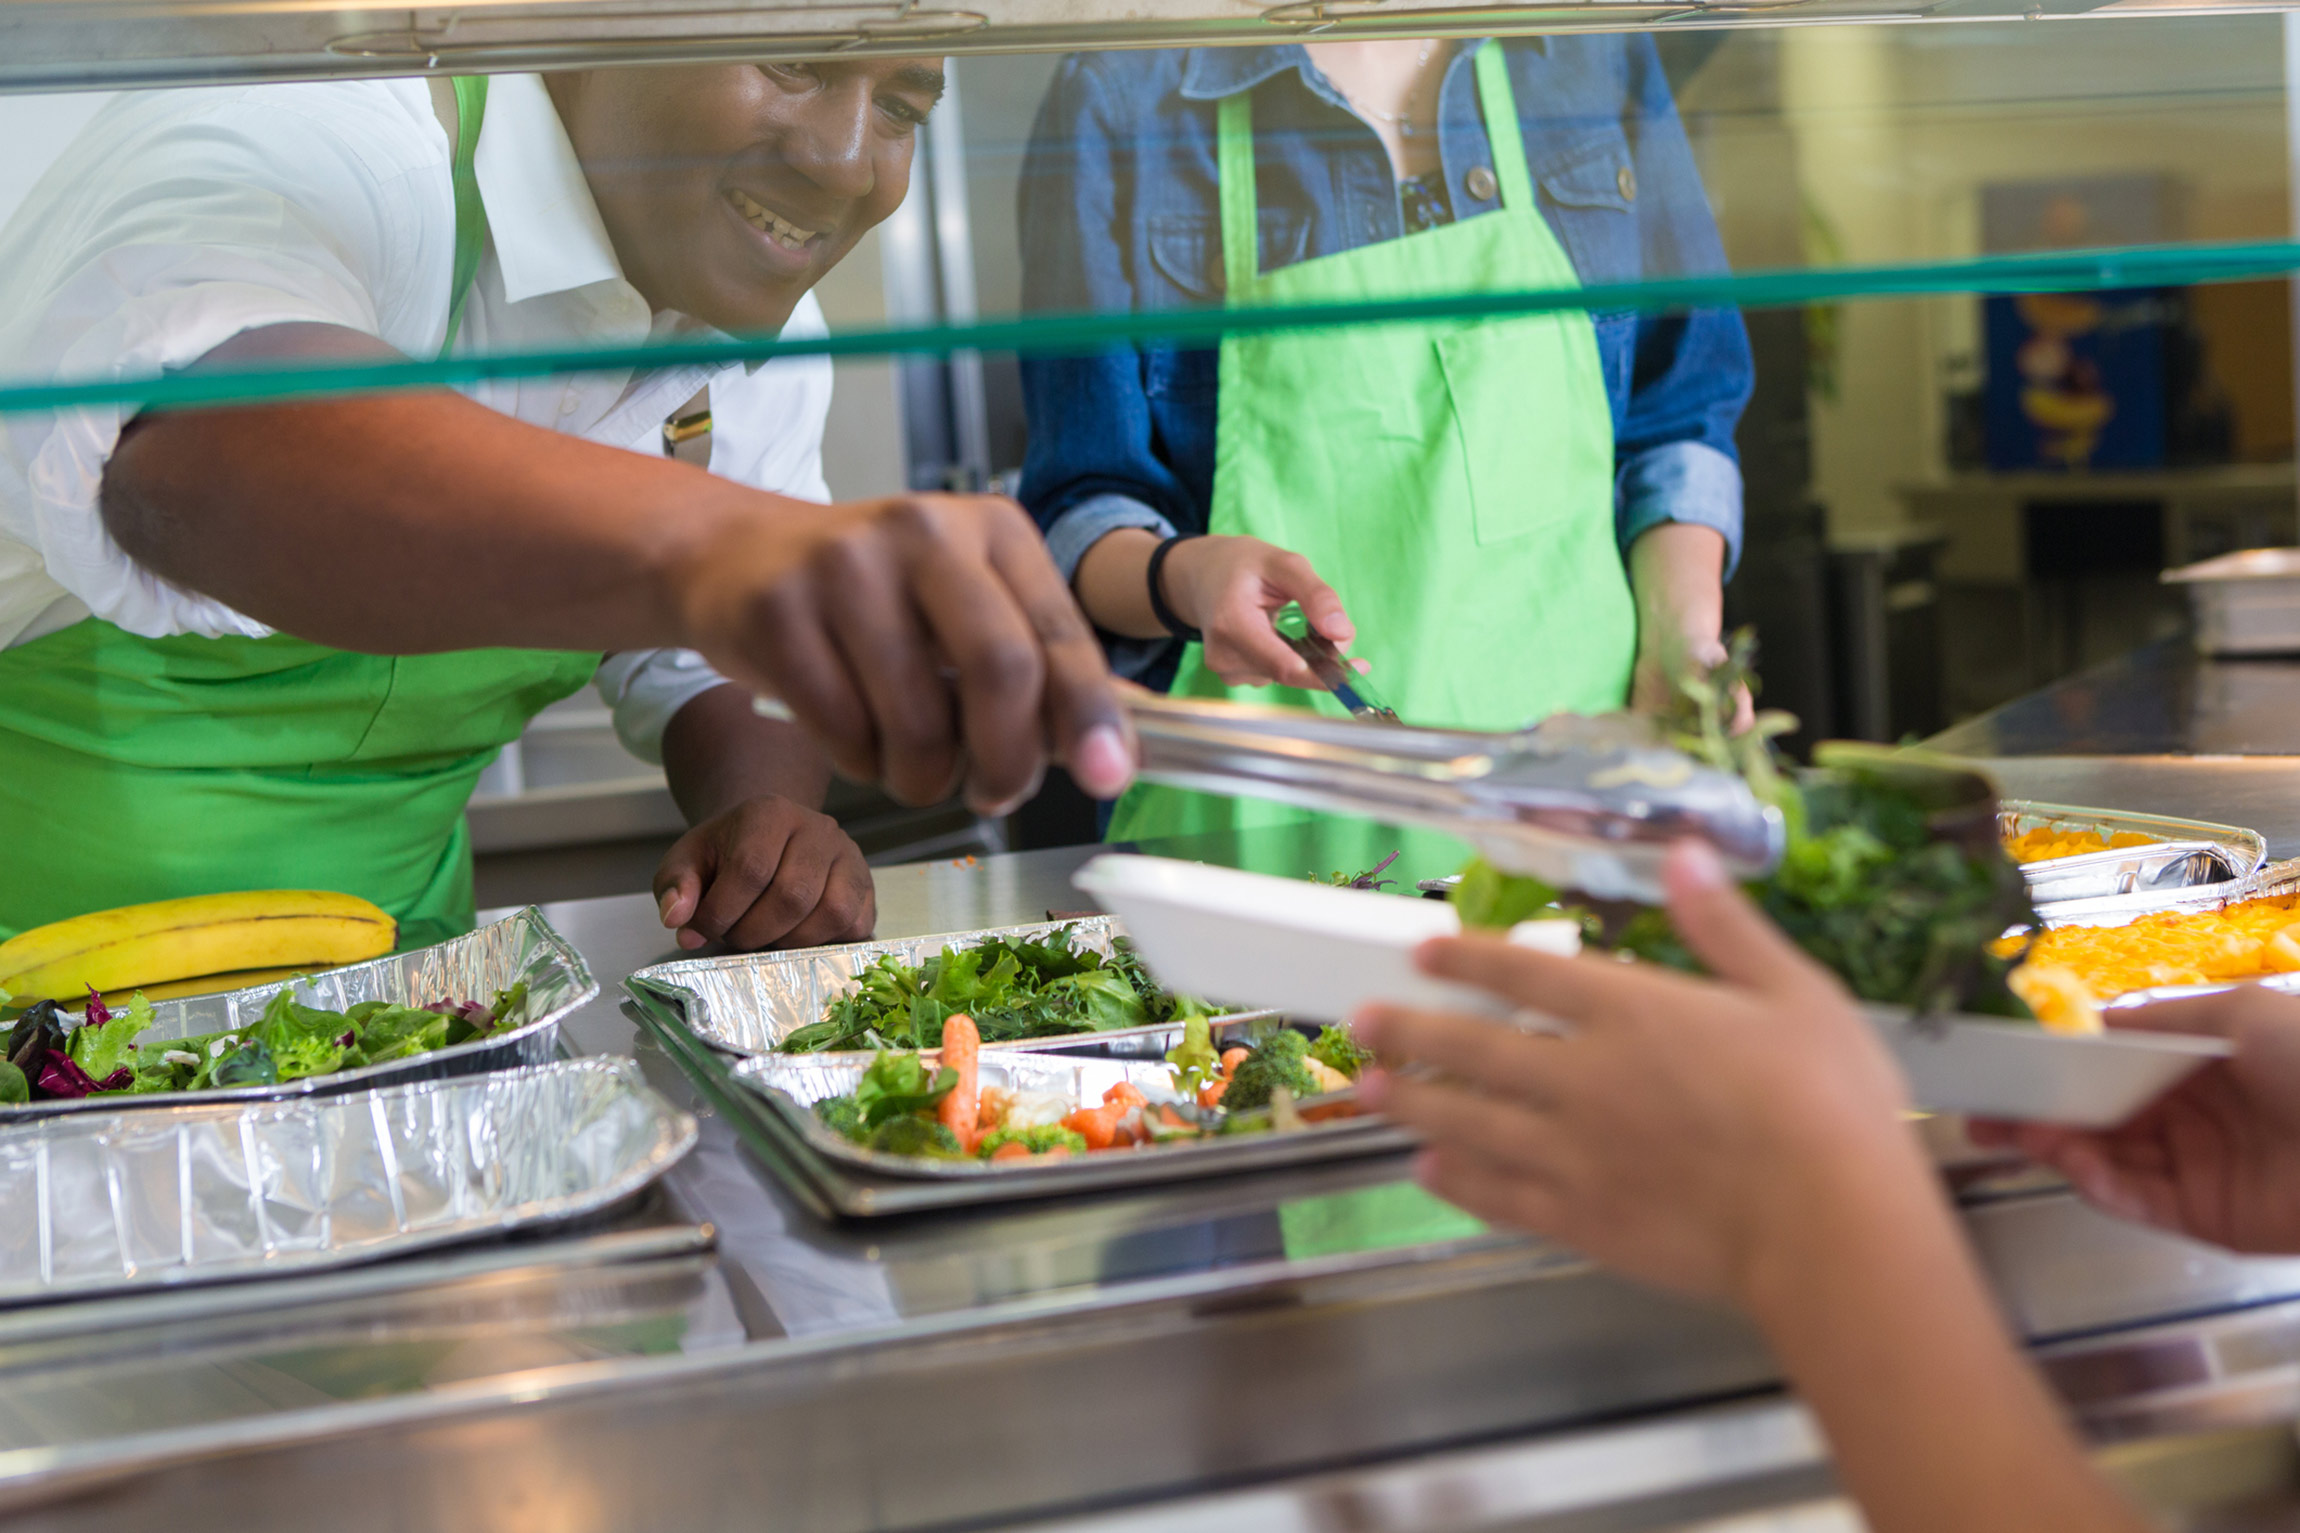 10 Ways School Lunch in America Is Improving: Salad Bars